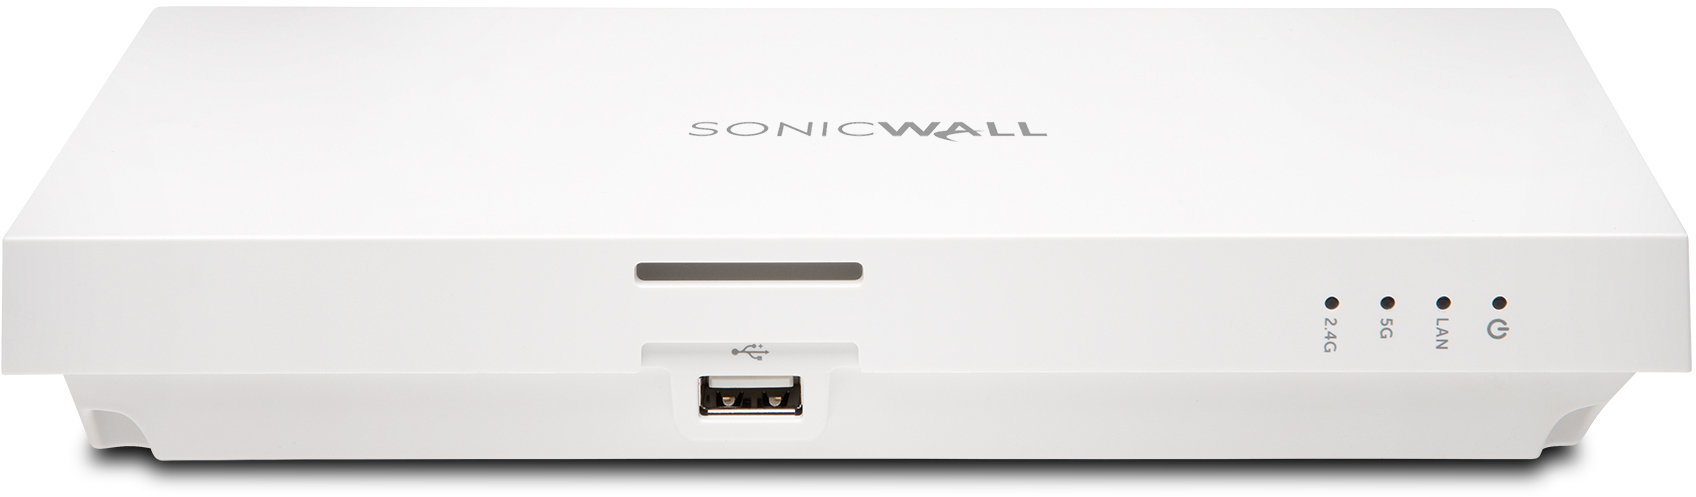 SonicWALL SonicWave 231c Front